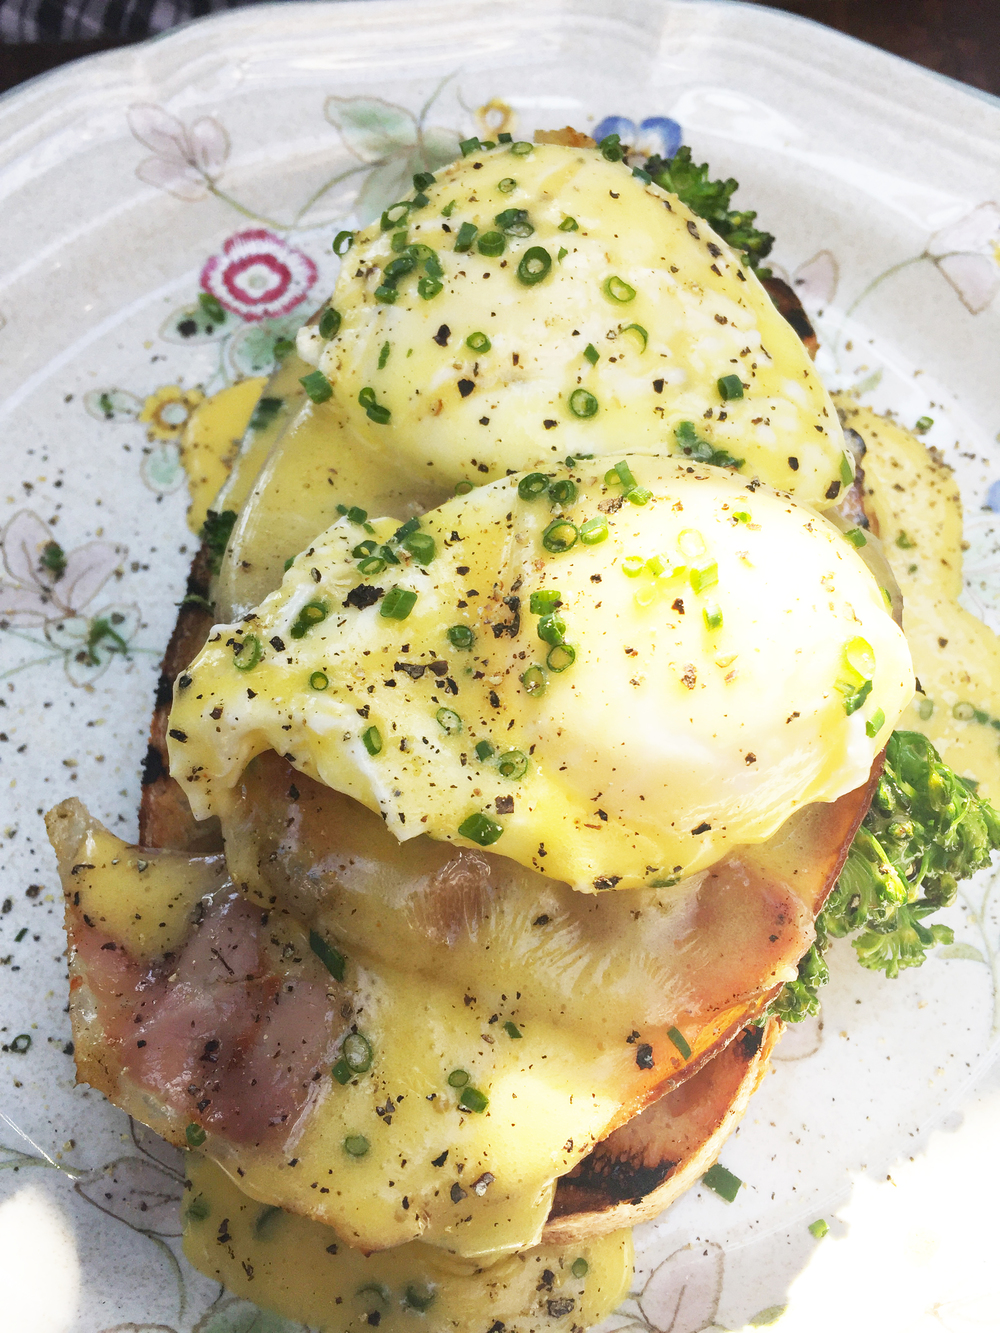 Poached eggs with Broadbents ham, grilled broccoli, hollandaise, and country bread.